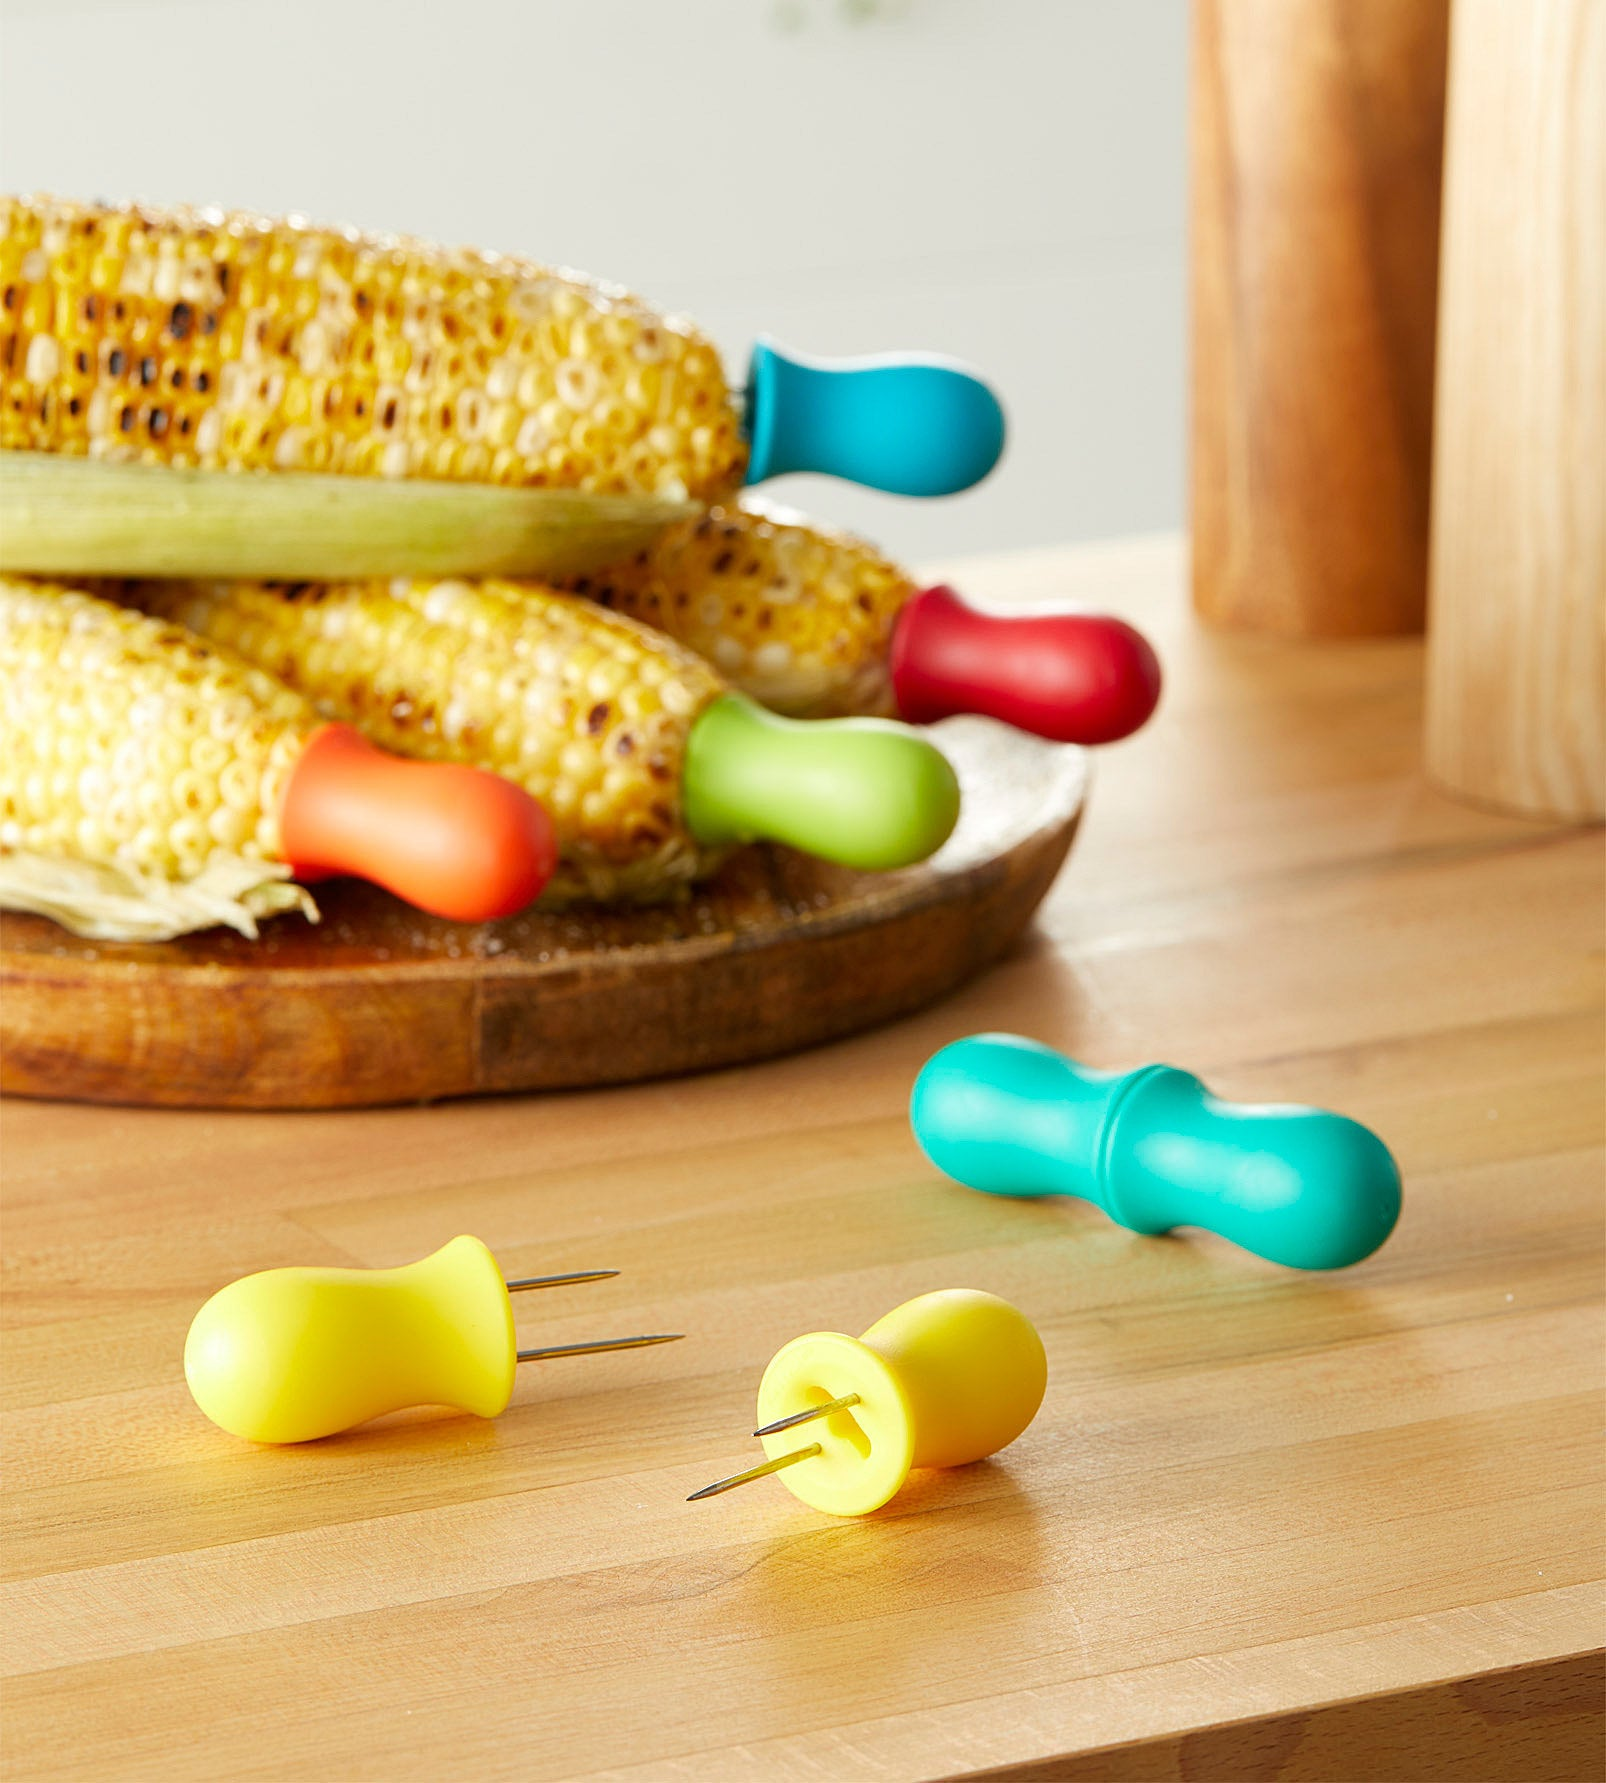 A set of colourful corn cob holders attached to grilled cobs